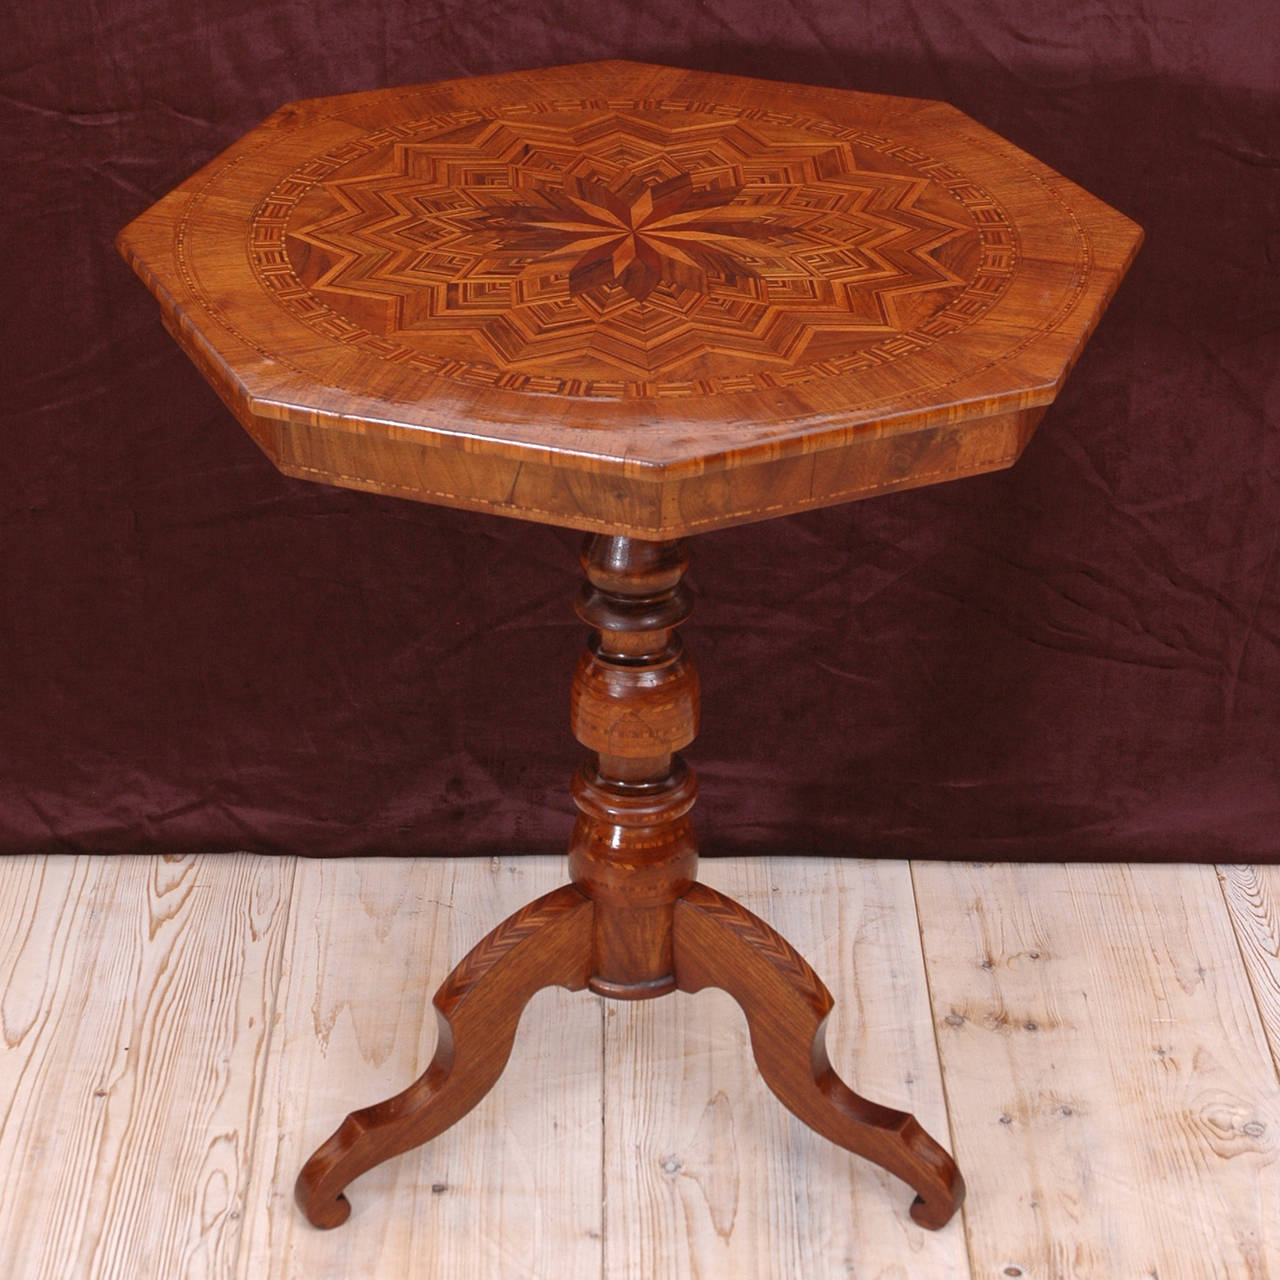 Italian Octagonal Walnut Marquetry Table With Tripod